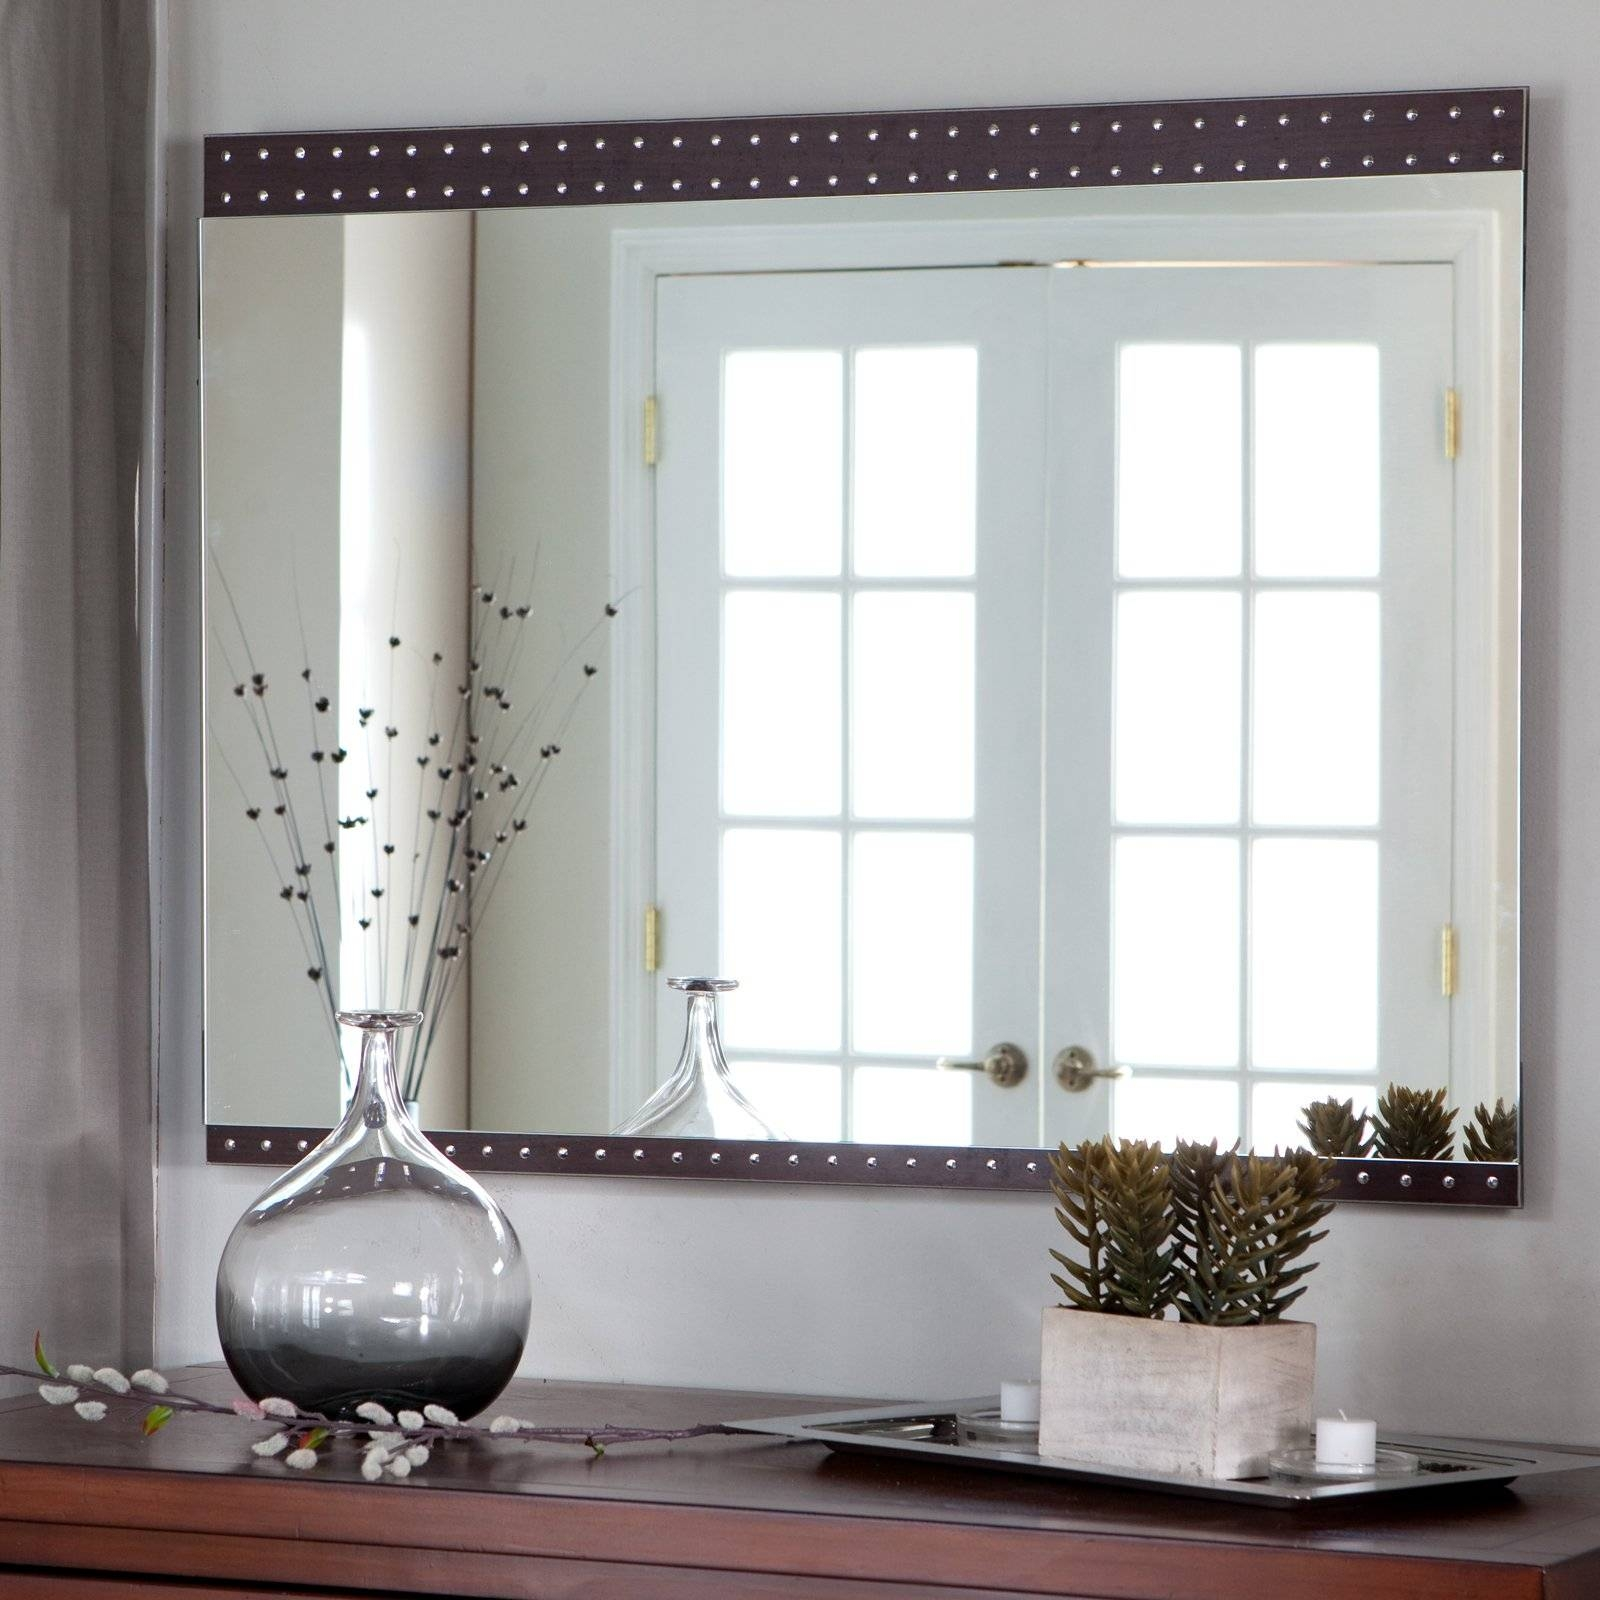 Decorative Wall Mirrors For Bathrooms Dining Room Wall Mirrors inside Contemporary Large Mirrors (Image 7 of 15)